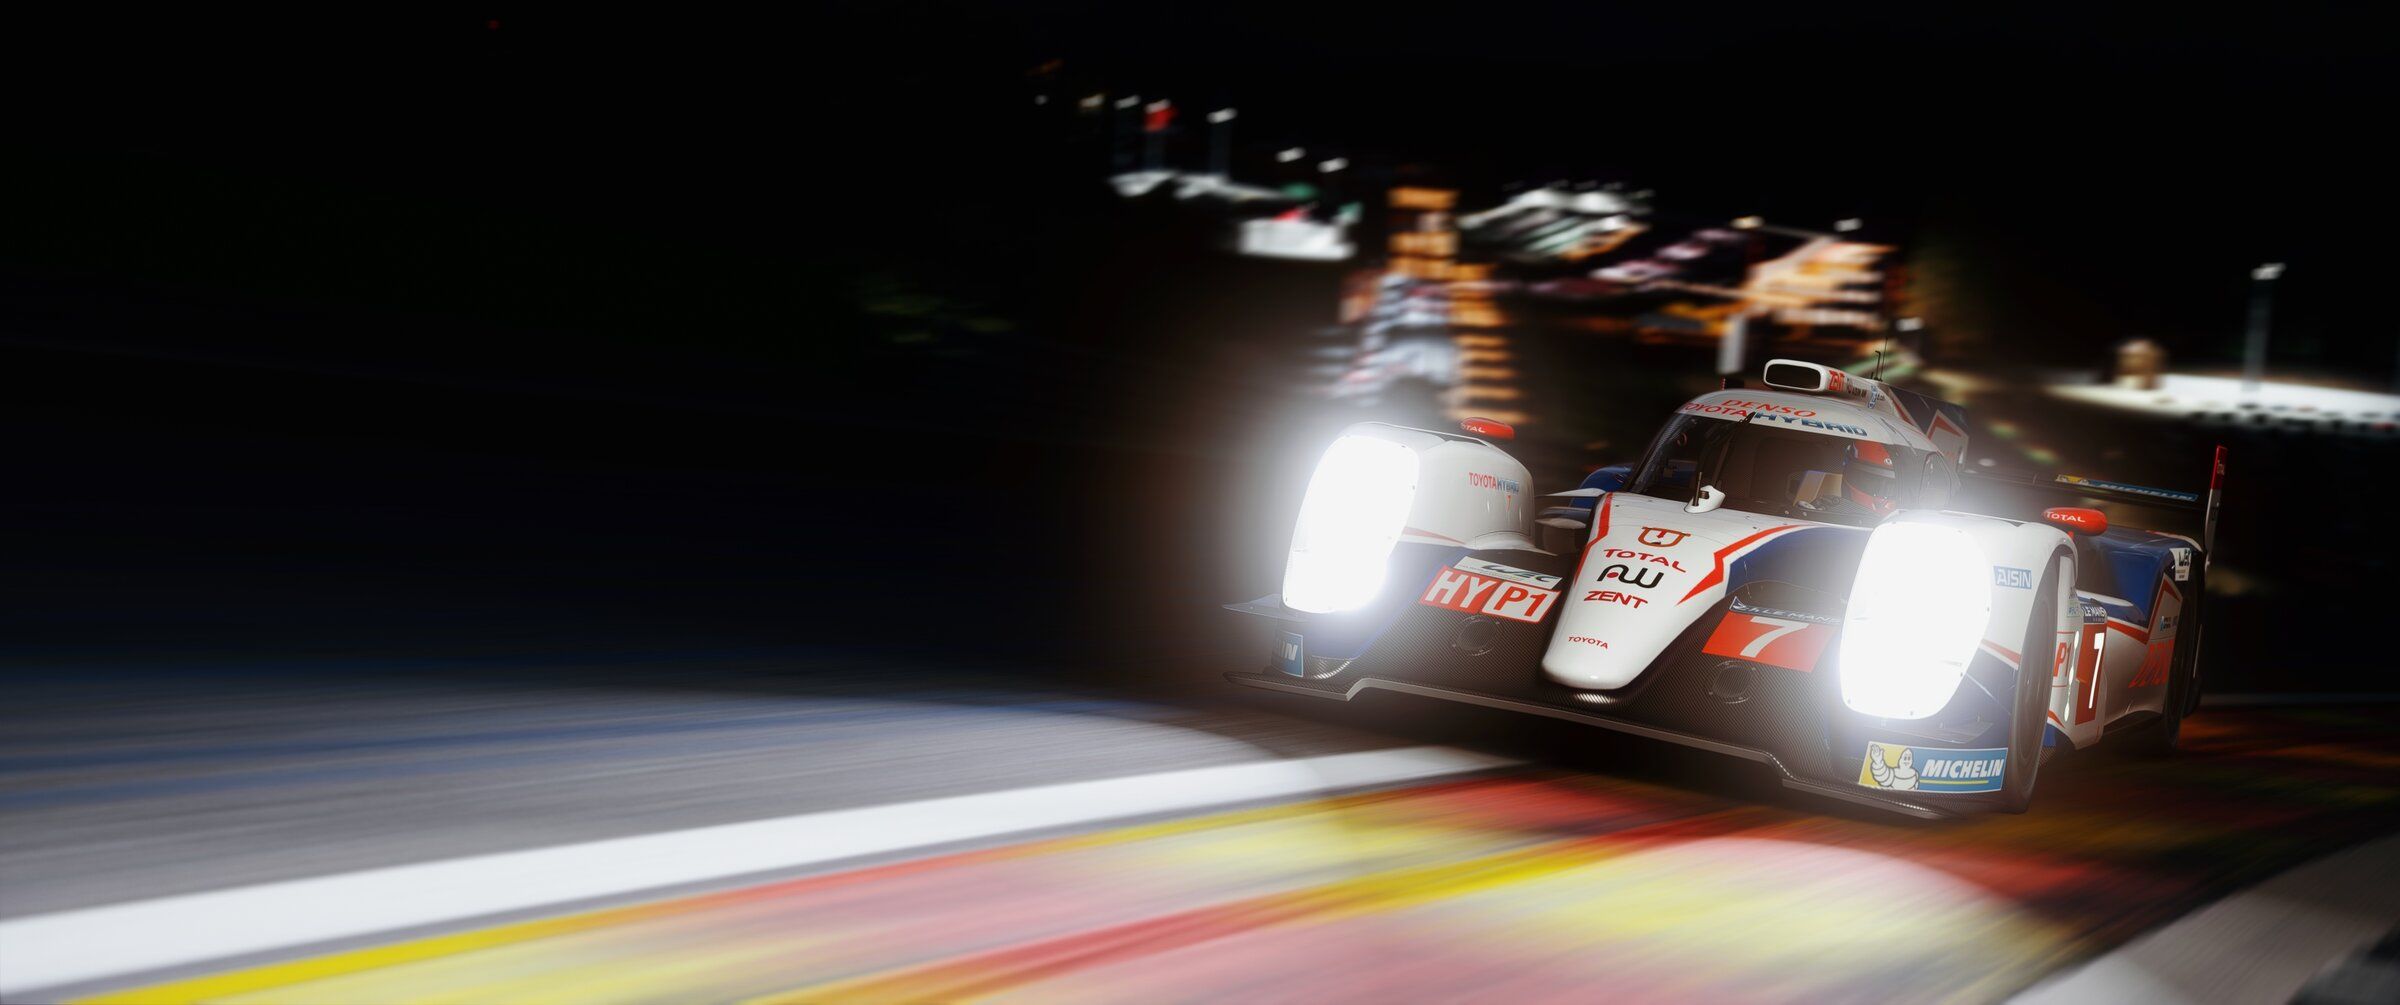 Screenshot_ks_toyota_ts040_spa_23-6-120-1-5-6.jpg